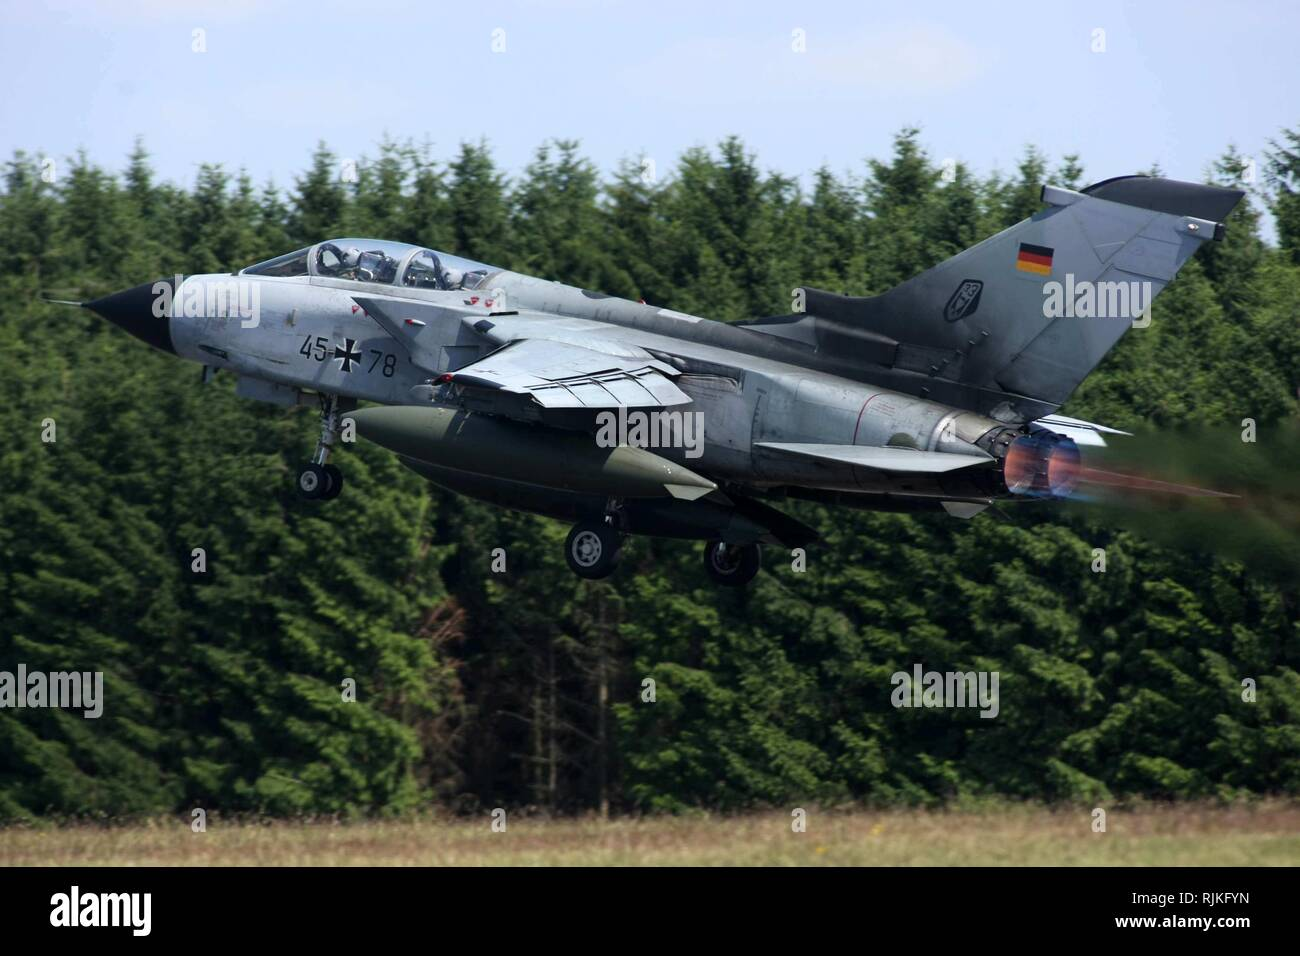 A 'Tornado' type fighter jet taking off on Tuesday (24 June 2008). A study by the US Air Force has confirmed that the nuclear weapons depot at the air base in the Cochem-Zell district is inadequately secured. Up to 20 B61 bombs with an explosive force ten times greater than that of the Hiroshima bomb are supposed to be stored in underground bunkers on the site of the base. | usage worldwide - Stock Image